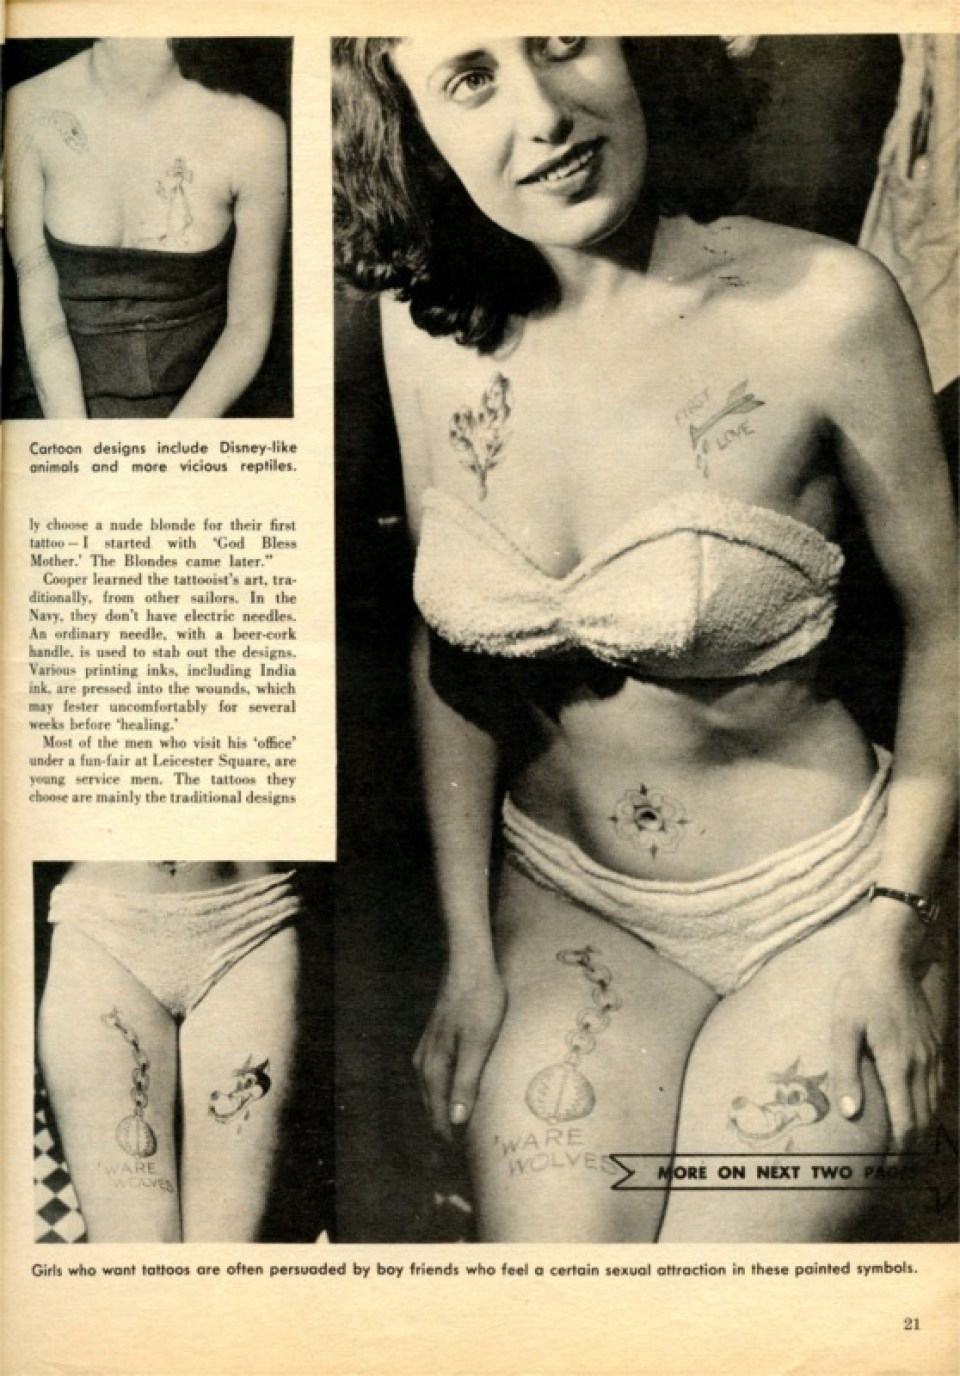 The media was scandalised by Cooper's tattooed women - 'Adventures as a Skin Artist', Men in Danger 1964